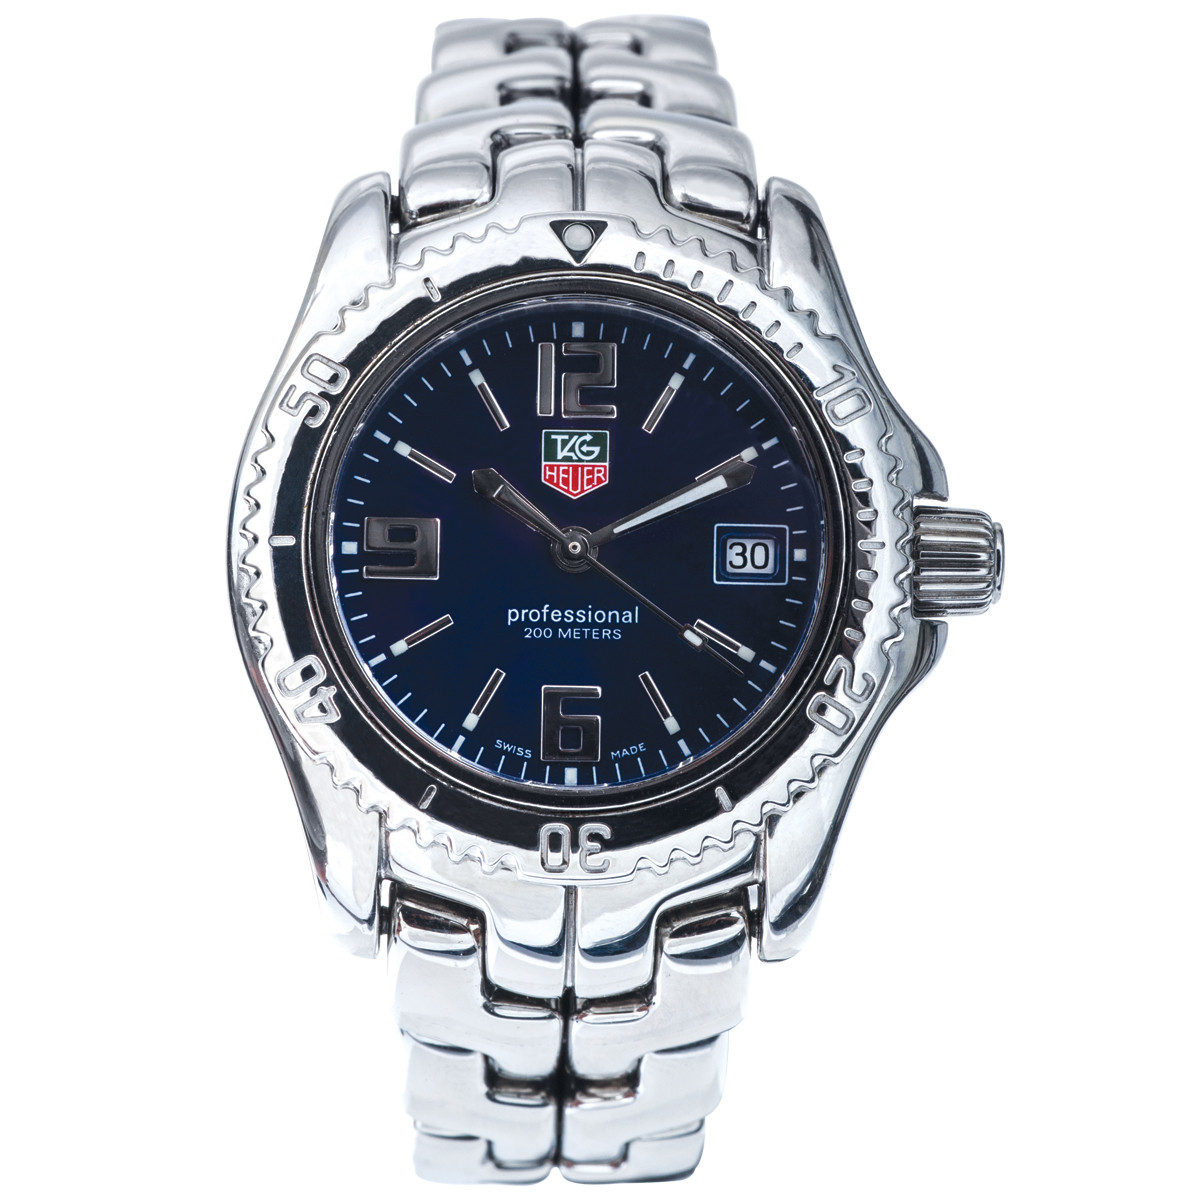 Pre-Owned Tag Heuer Professional 200M